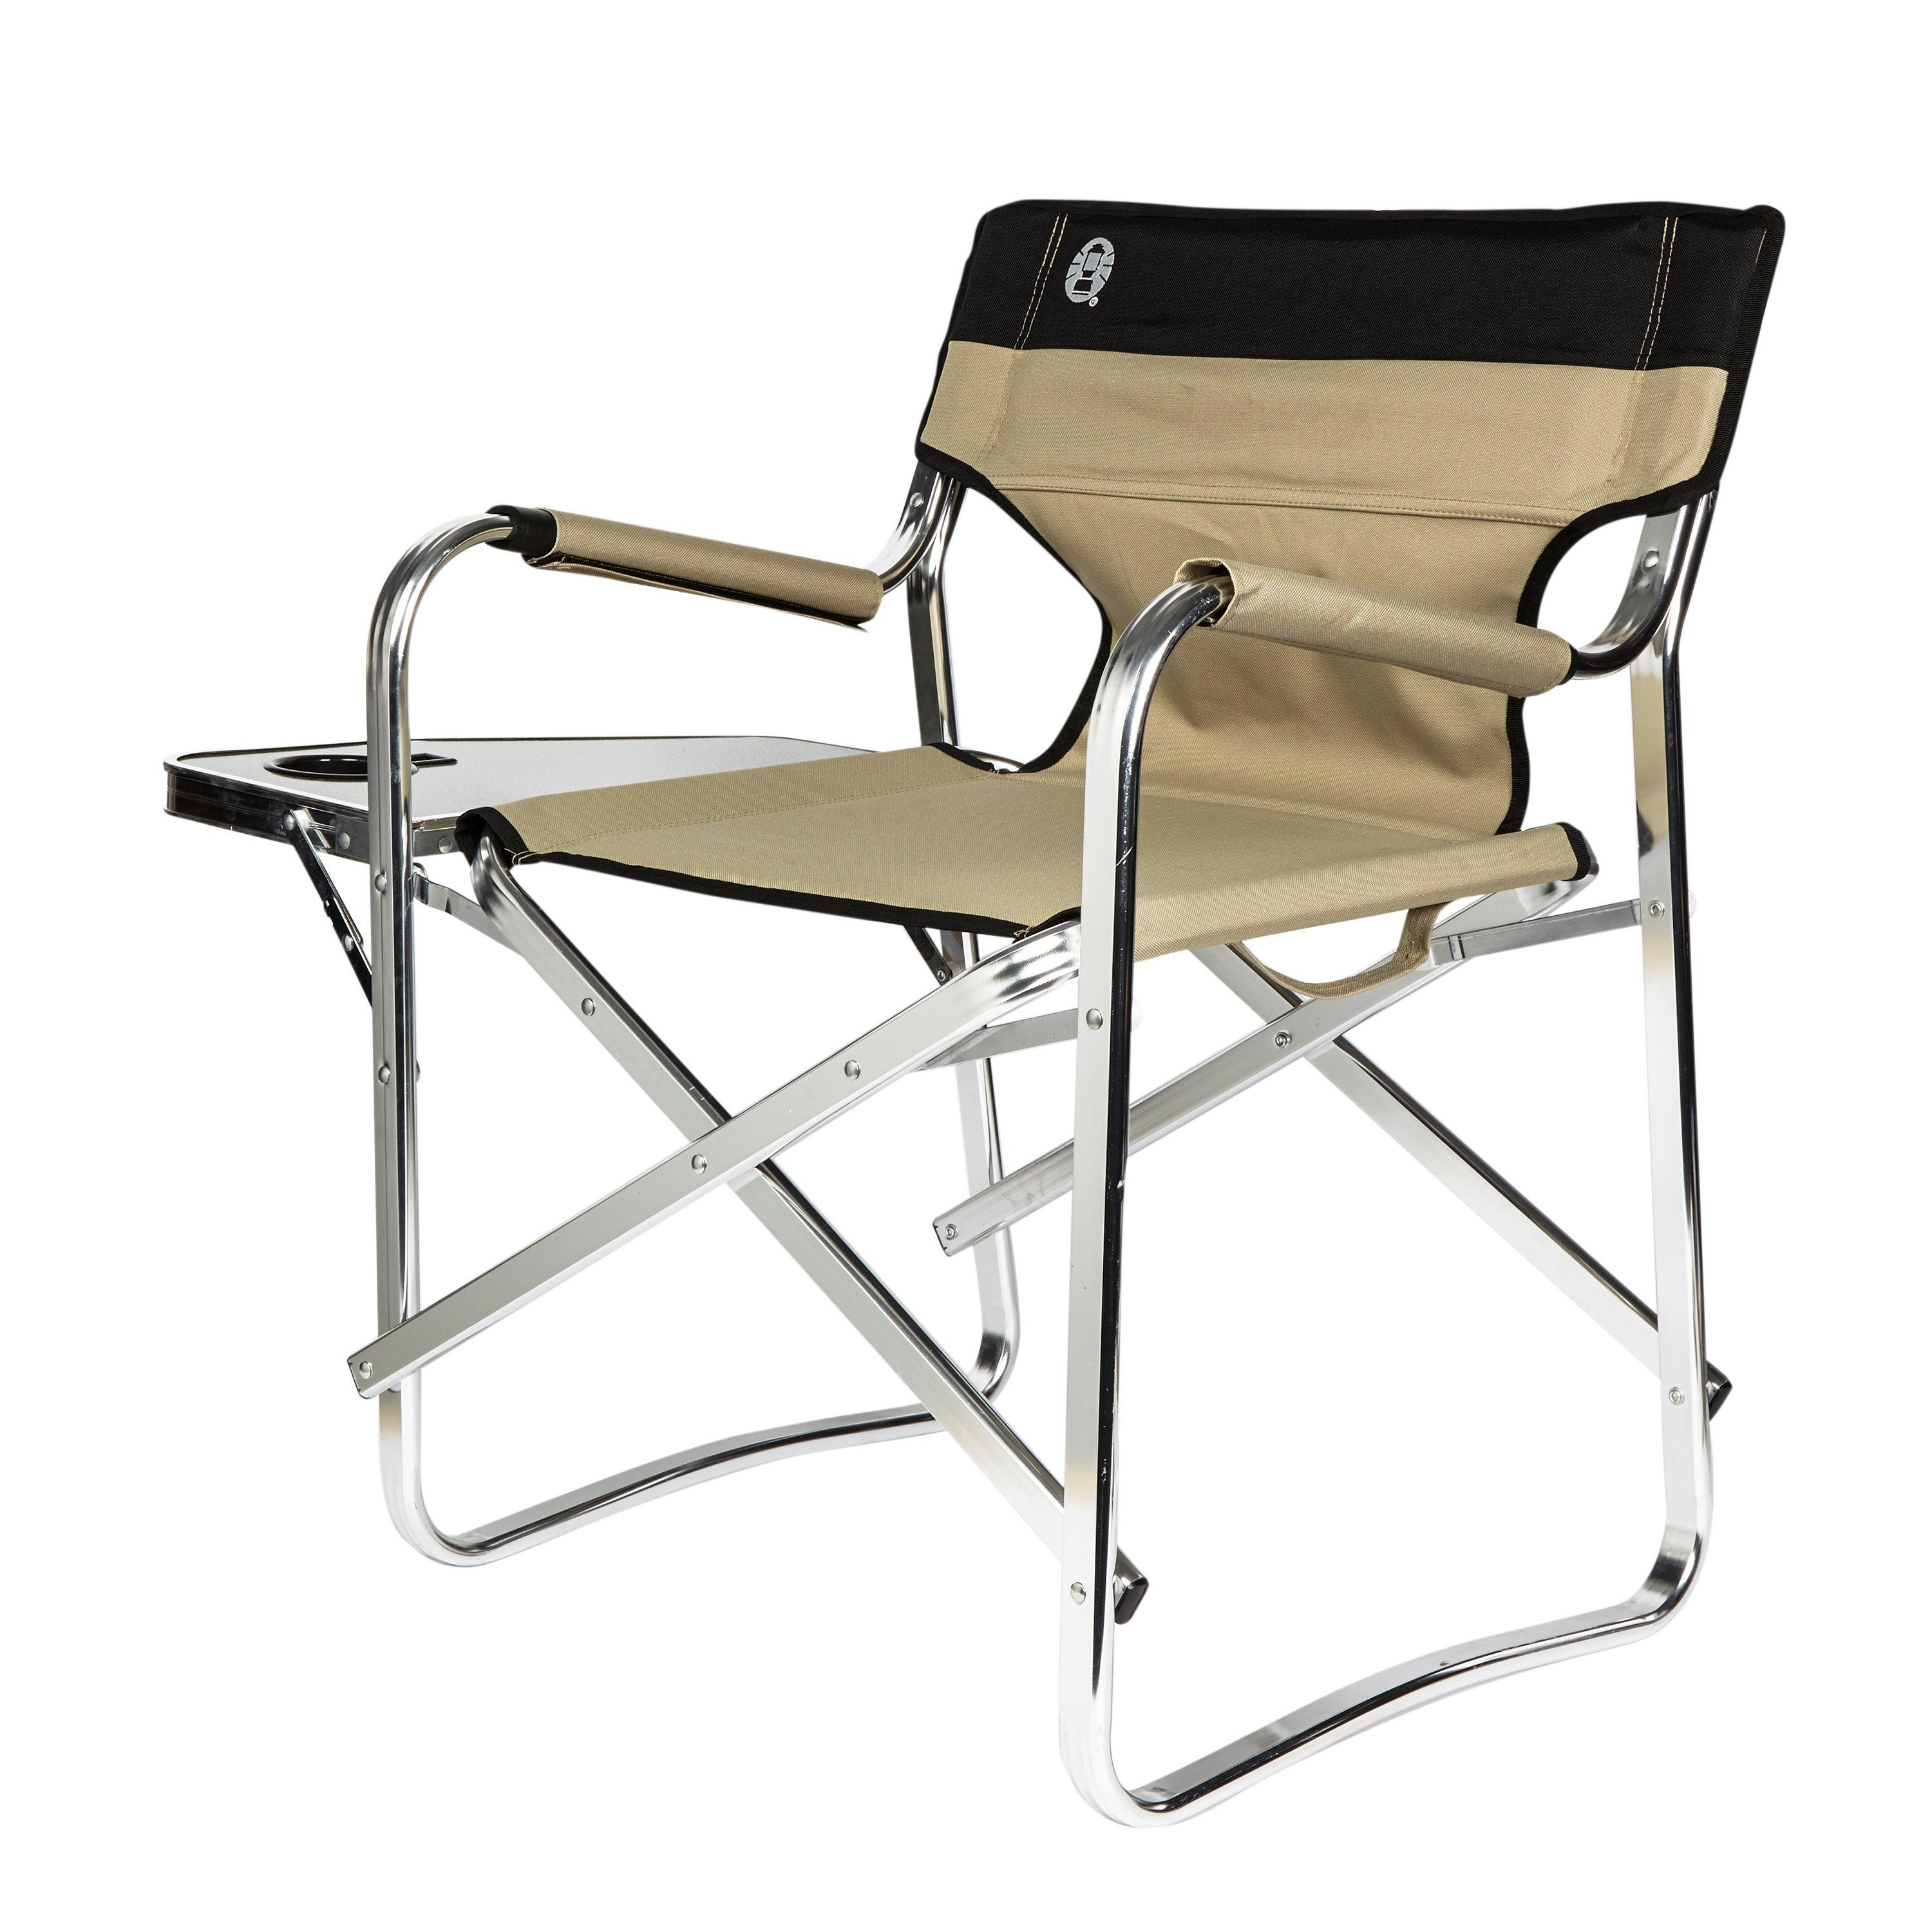 coleman portable deck chair patio covers canada buy cheap compare products prices for best uk